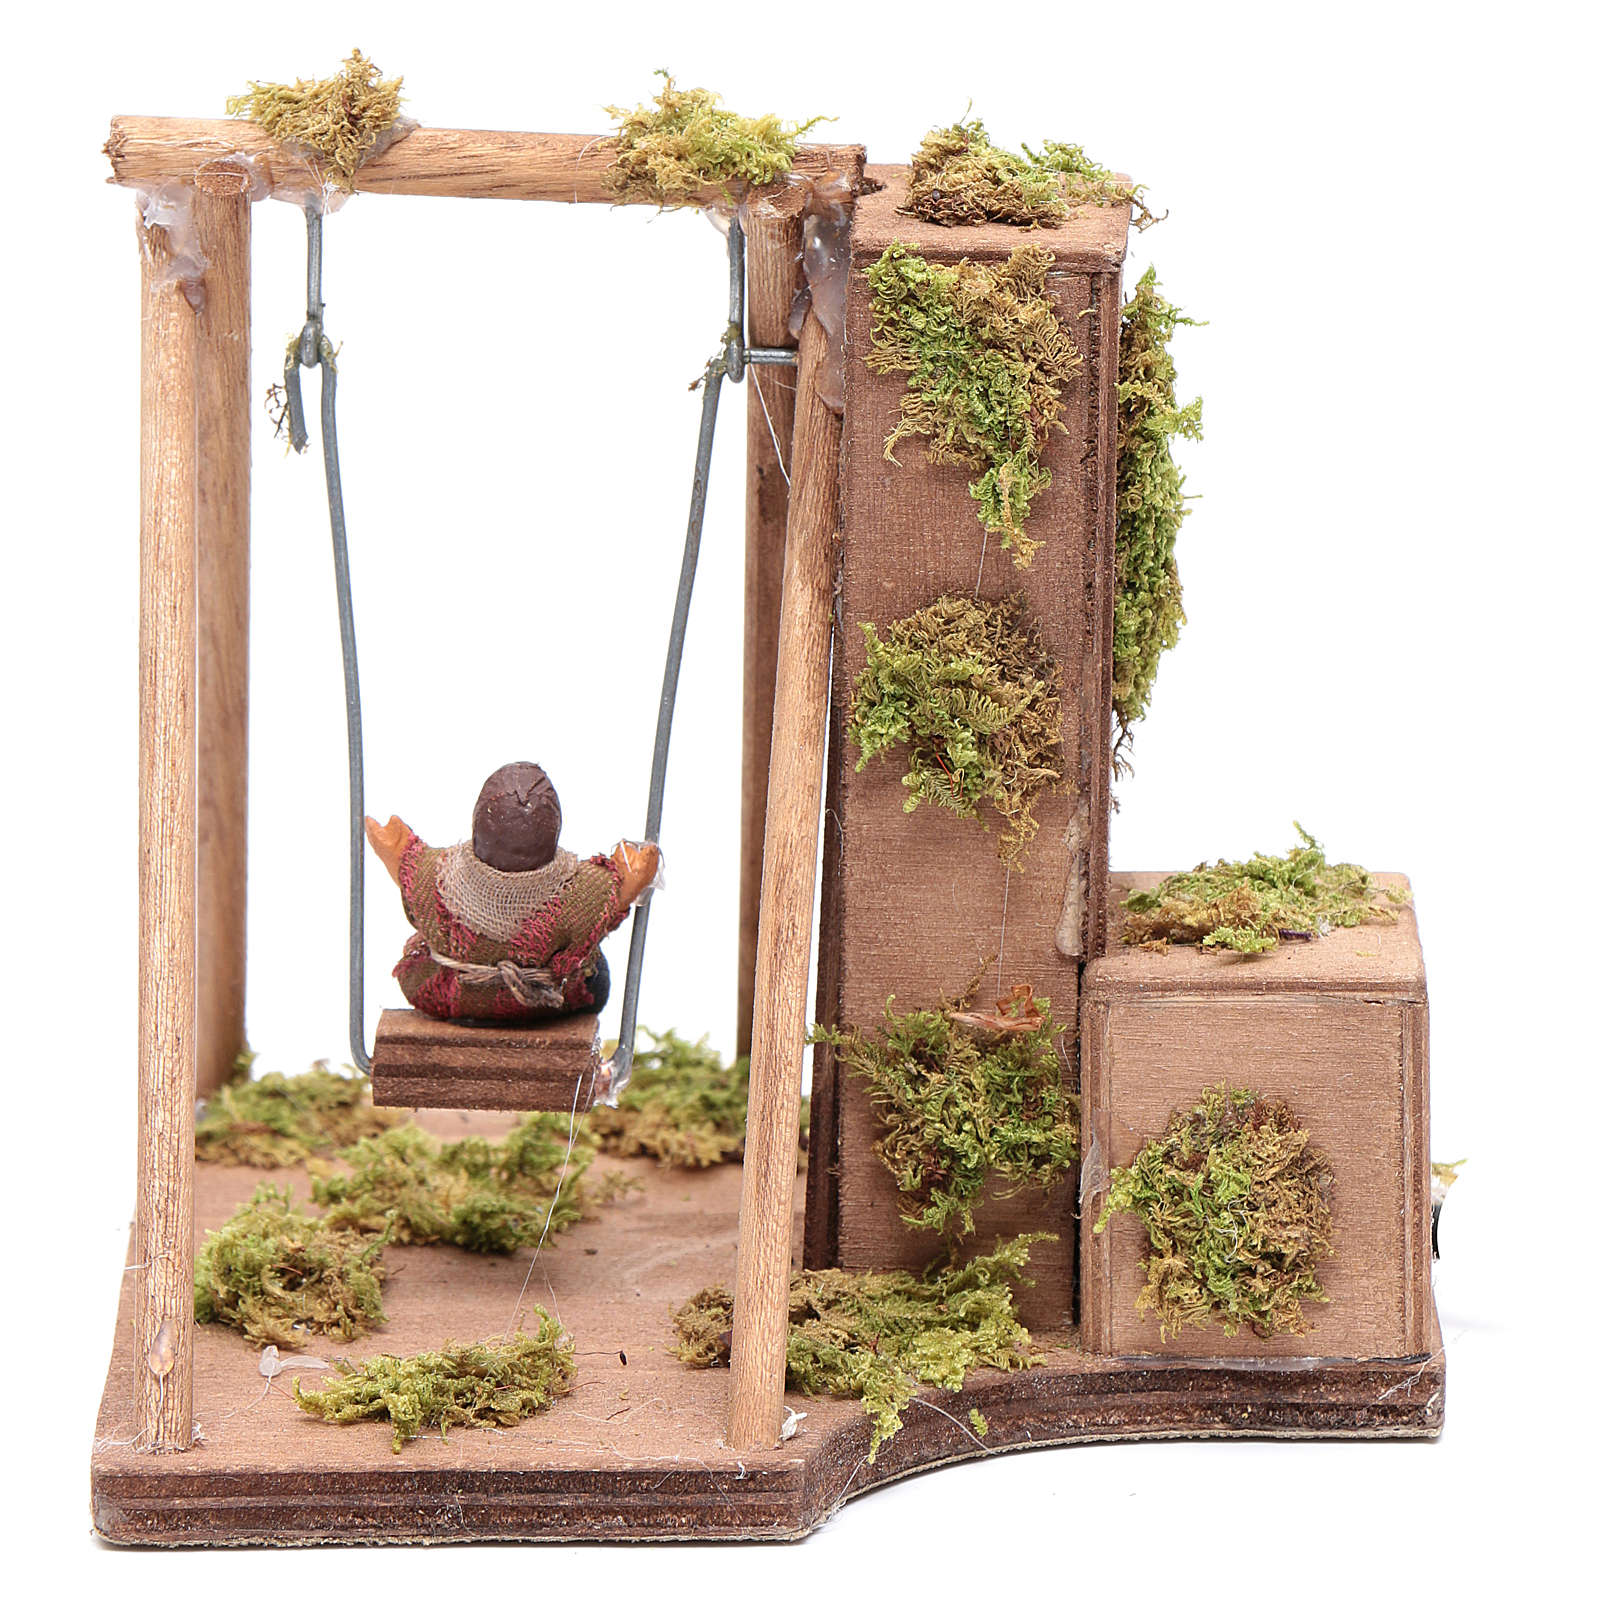 Moving child on the swing 10 cm for Neapolitan nativity scene 4